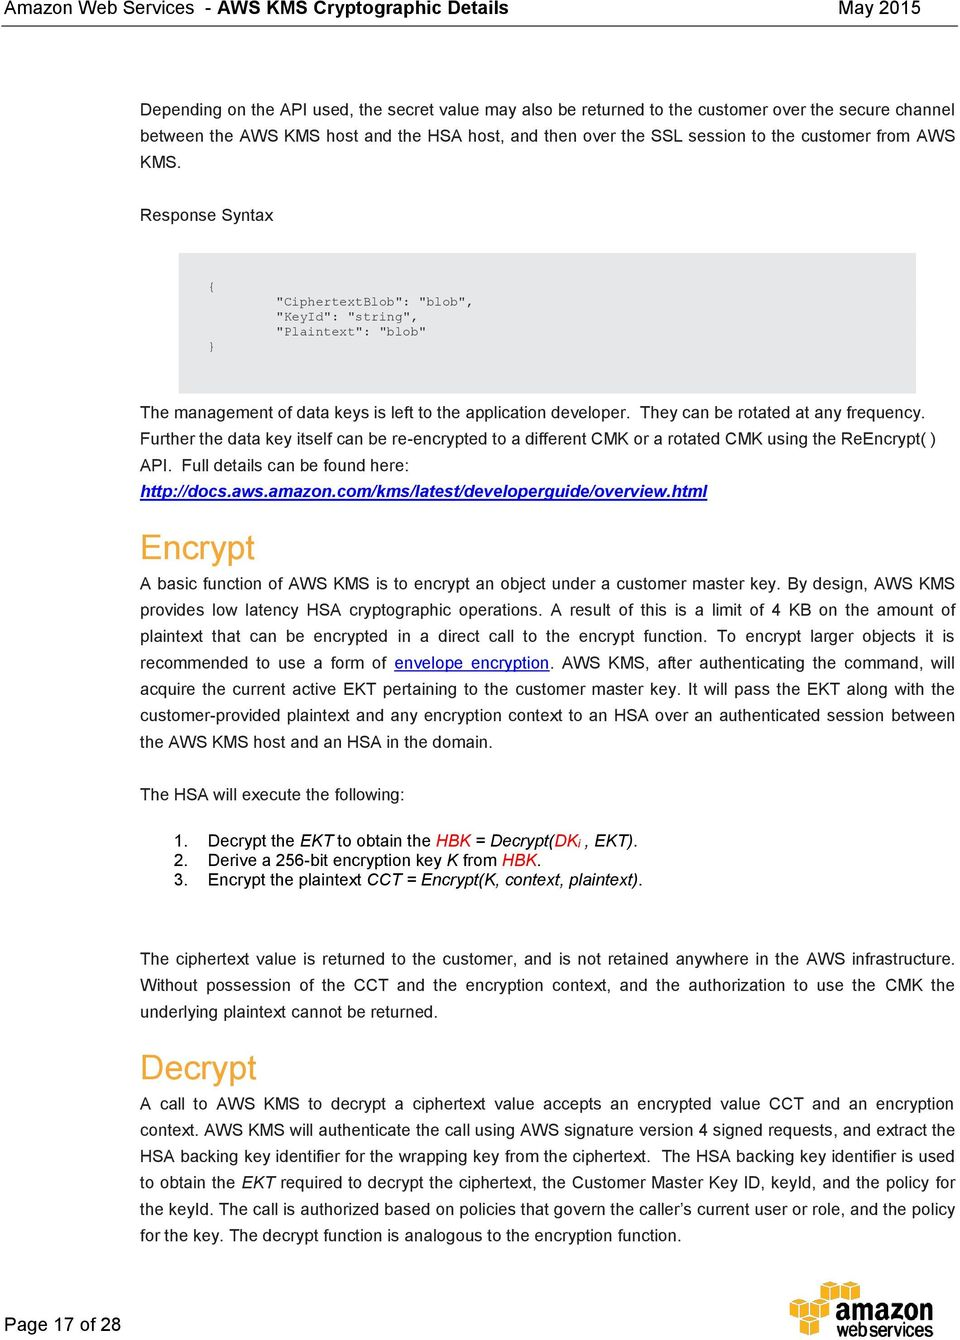 Further the data key itself can be re-encrypted to a different CMK or a rotated CMK using the ReEncrypt( ) API. Full details can be found here: http://docs.aws.amazon.